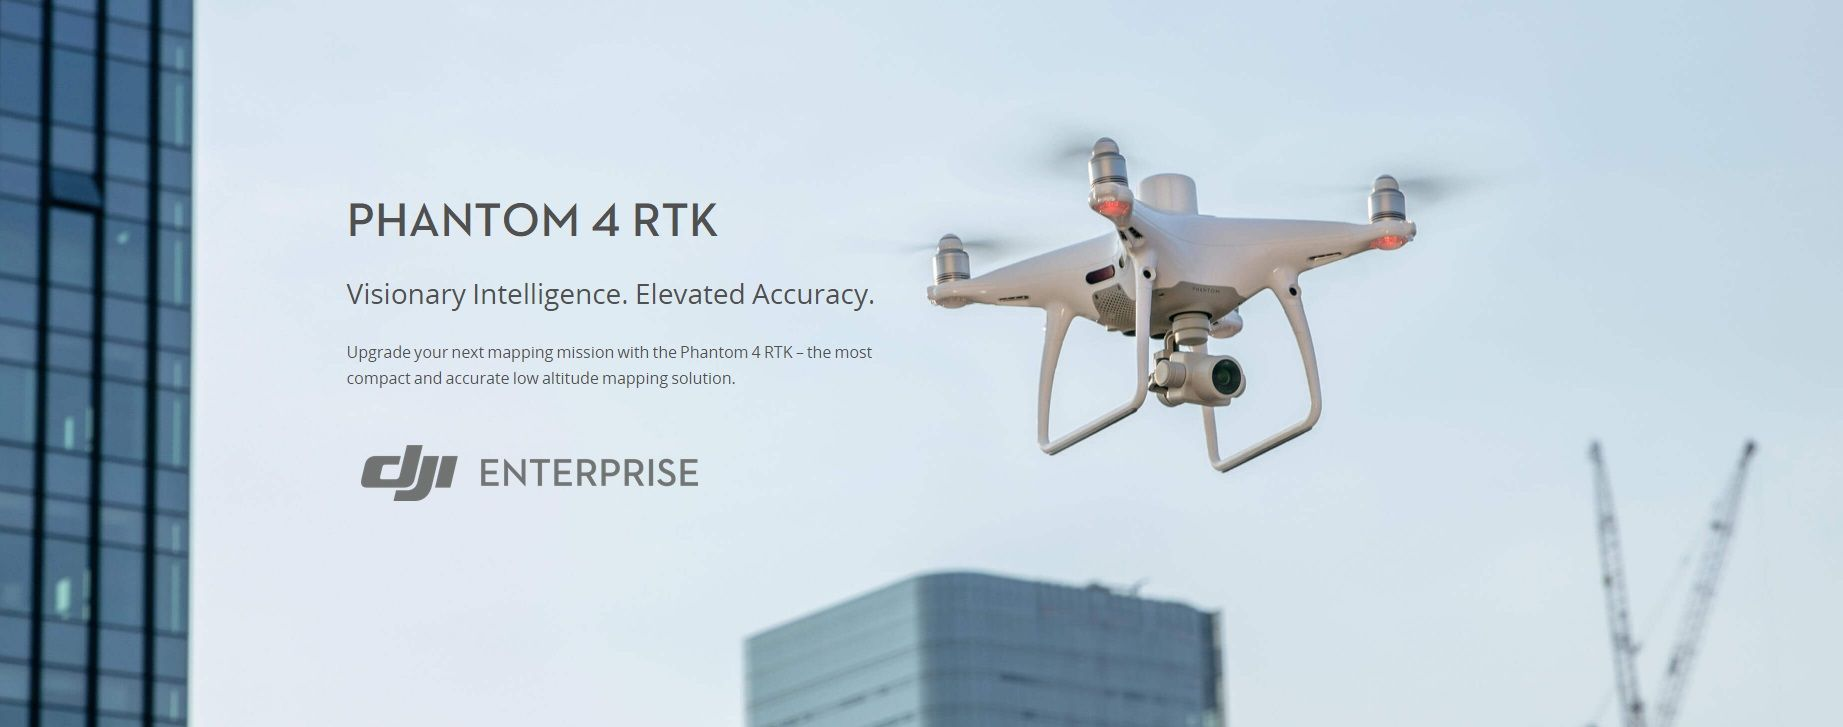 DJI ENTERPRISE PHANTOM 4 RTK